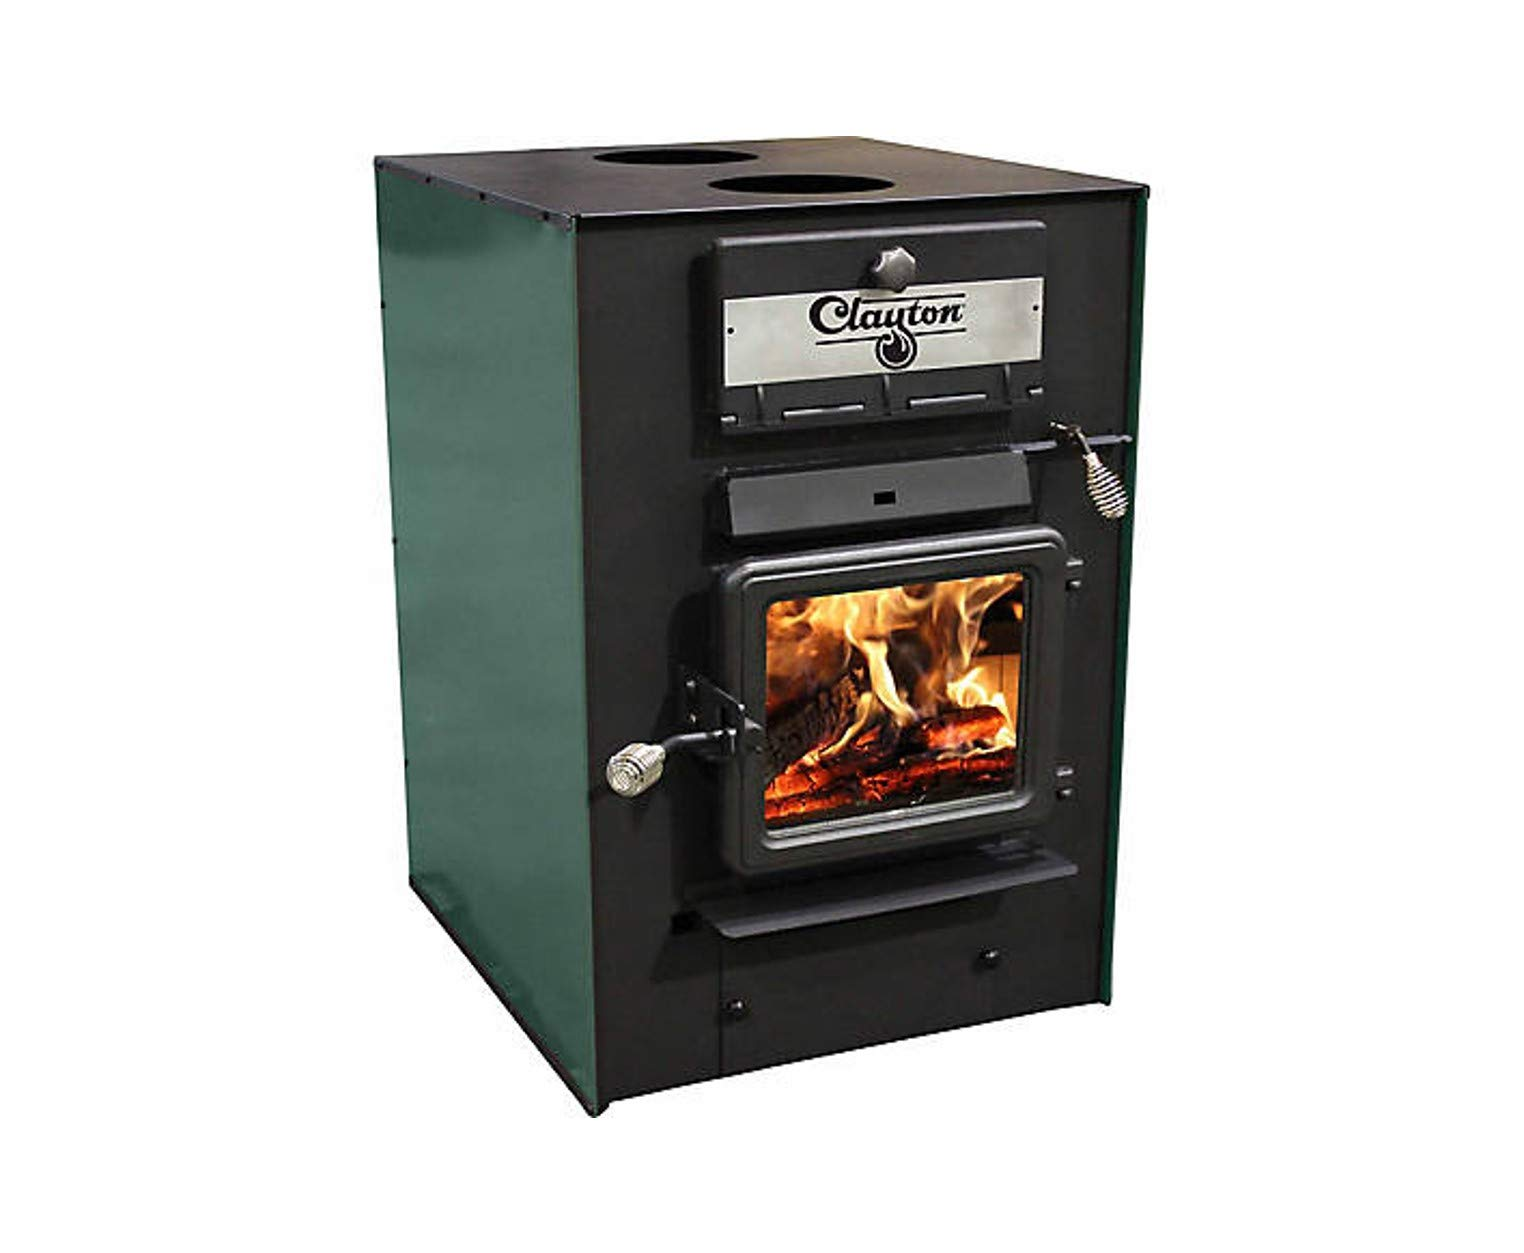 CLAYTON US Stove Wood Furnace, 2,750 sf with Dual 550 CFM Blowers CF700M by CLAYTON